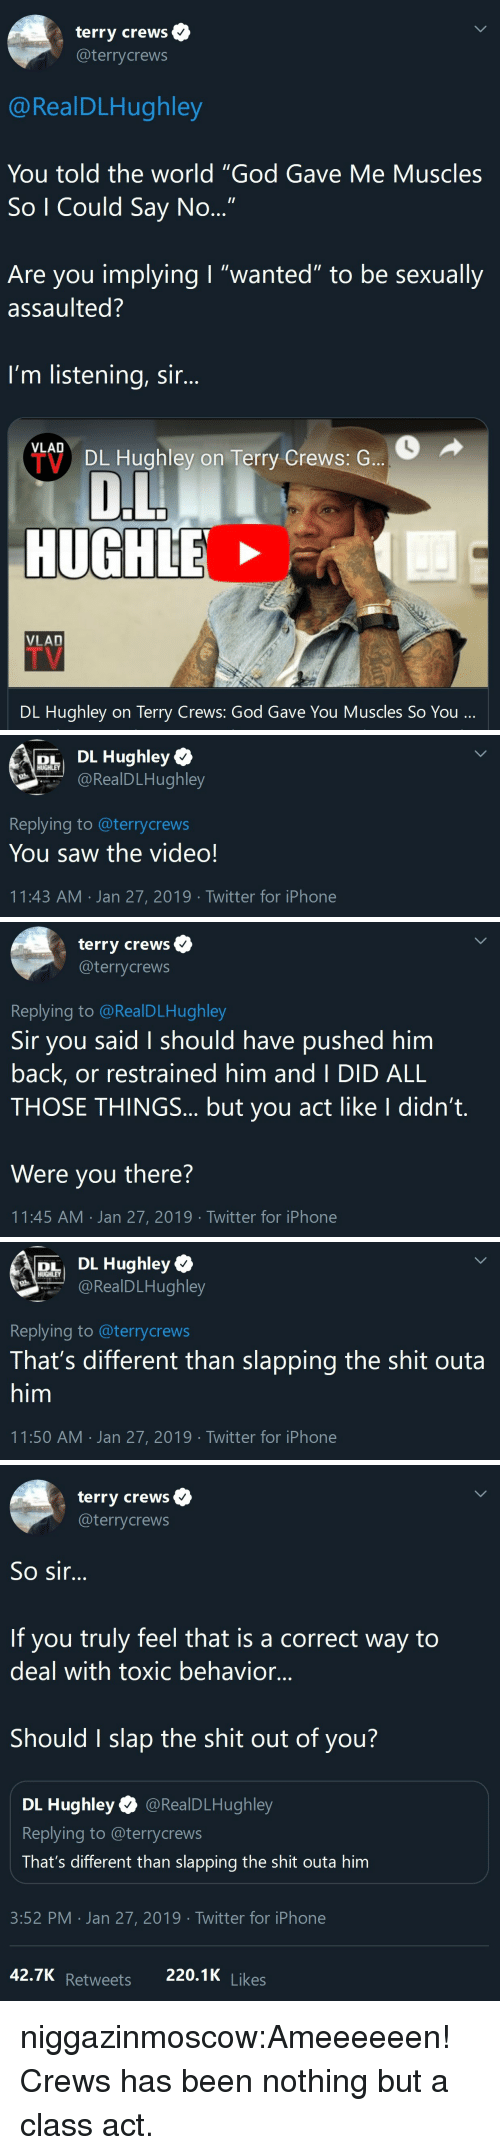 """And I Did: terry crews  @terrycrews  @RealDLHughley  You told the world """"God Gave Me Muscles  So I Could Say No  Are you implying I """"wanted"""" to be sexually  assaulted?  I'm listening, sir...  VLAD  DL Hughley on Terry Crews: G  HUGH  VLAD  DL Hughlev on Terry Crews: God Gave You Muscles So You   DL Hughley  RealDLHughley  Replying to @terrycrews  You saw the video!  11:43 AM Jan 27, 2019 Twitter for iPhone   terry crews  @terrycrews  Replying to @RealDLHughley  Sir you said I should have pushed him  back, or restrained him and I DID ALL  THOSE THINGS... but you act like I didn't.  Were you there?  11:45 AM Jan 27, 2019 Twitter for iPhone   RALE  r DL Hughley  @RealDLHughley  Replying to @terrycrews  That's different than slapping the shit outa  him  11:50 AM . Jan 27, 2019·Twitter for iPhone   terry crews  @terrycrews  So sir...  If you truly feel that is a correct way to  deal with toxic behavior...  Should I slap the shit out of you?  DL Hughley @RealDLHughley  Replying to @terrycrews  That's different than slapping the shit outa him  3:52 PM Jan 27, 2019 Twitter for iPhone  Retweets 220.1K niggazinmoscow:Ameeeeeen! Crews has been nothing but a class act."""